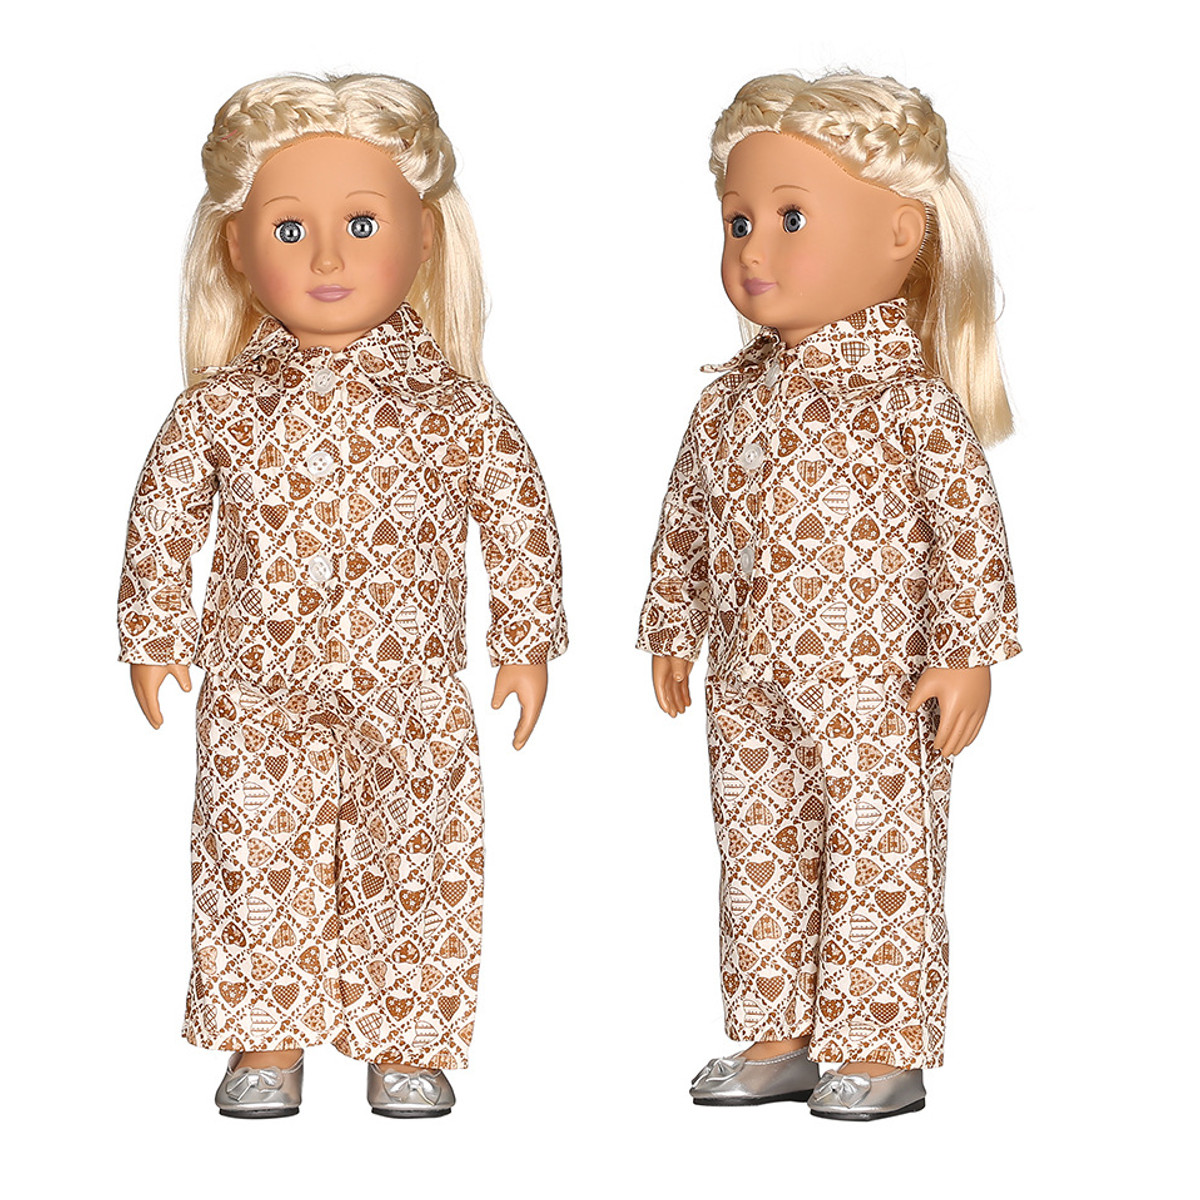 Star Nightgown For American Girl Dolls with Matching Hair Ribbon- Doll Clothes for 18 Inch American Girl Dolls